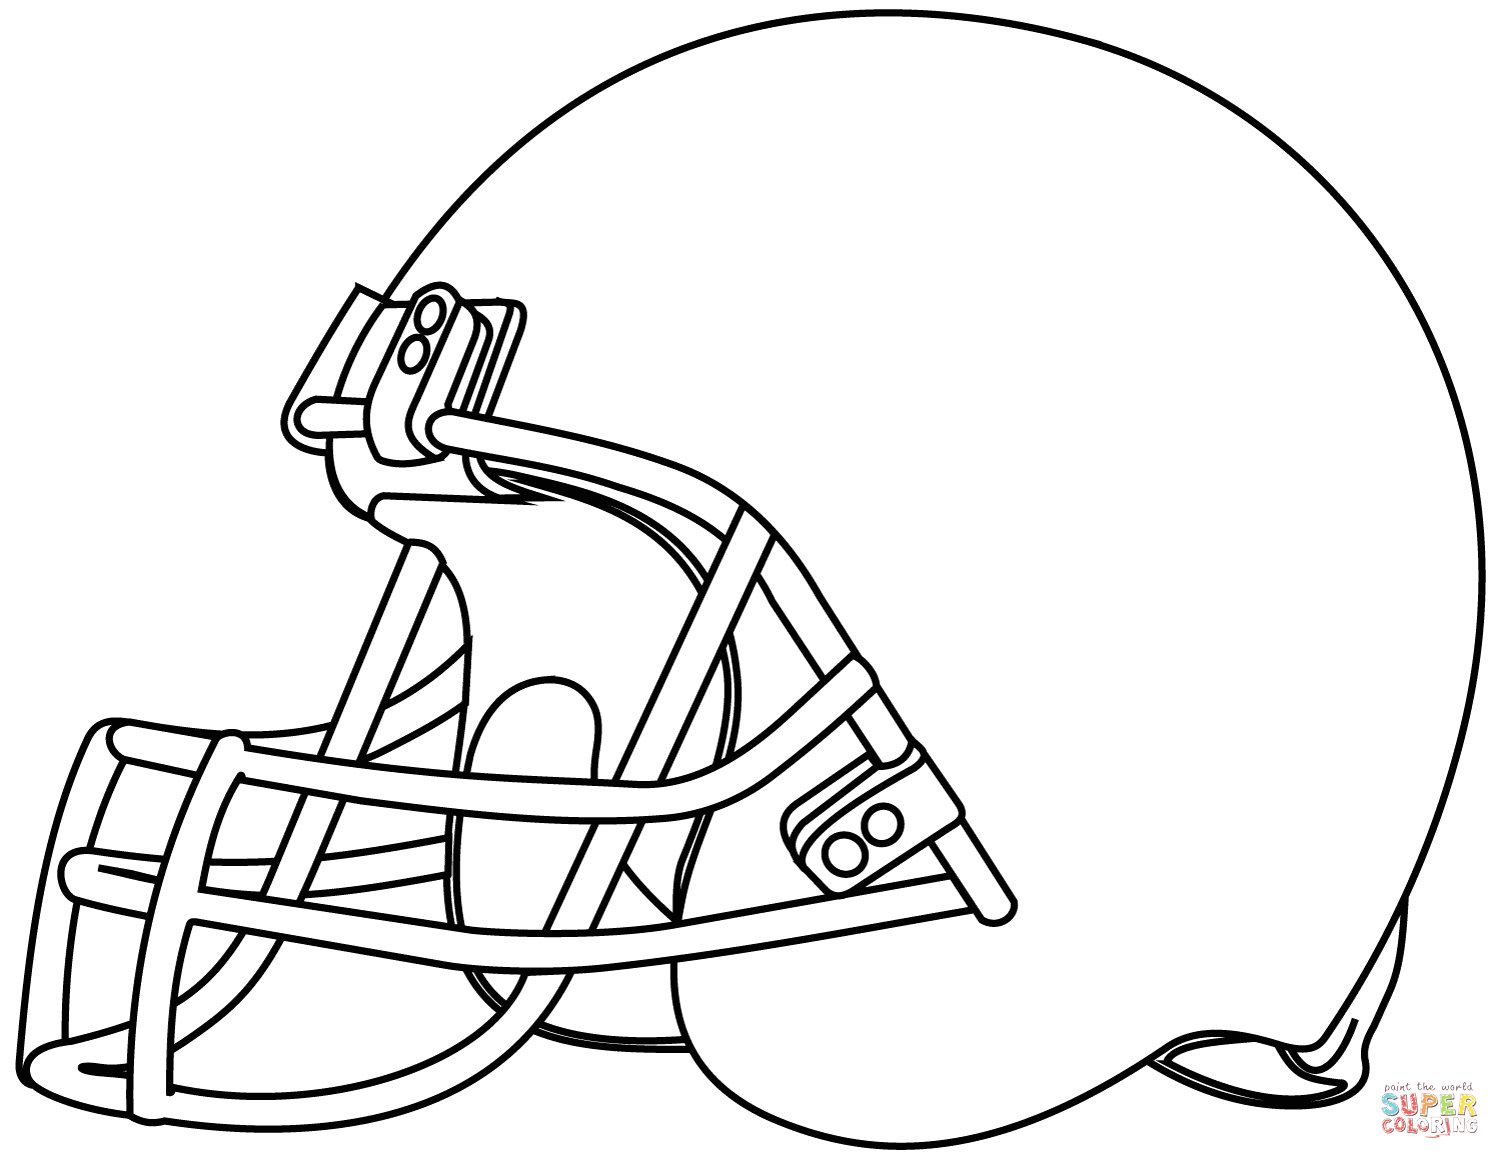 Free Football Helmet Coloring Pages to Print 25 Creative Picture Of Football Helmet Coloring Page